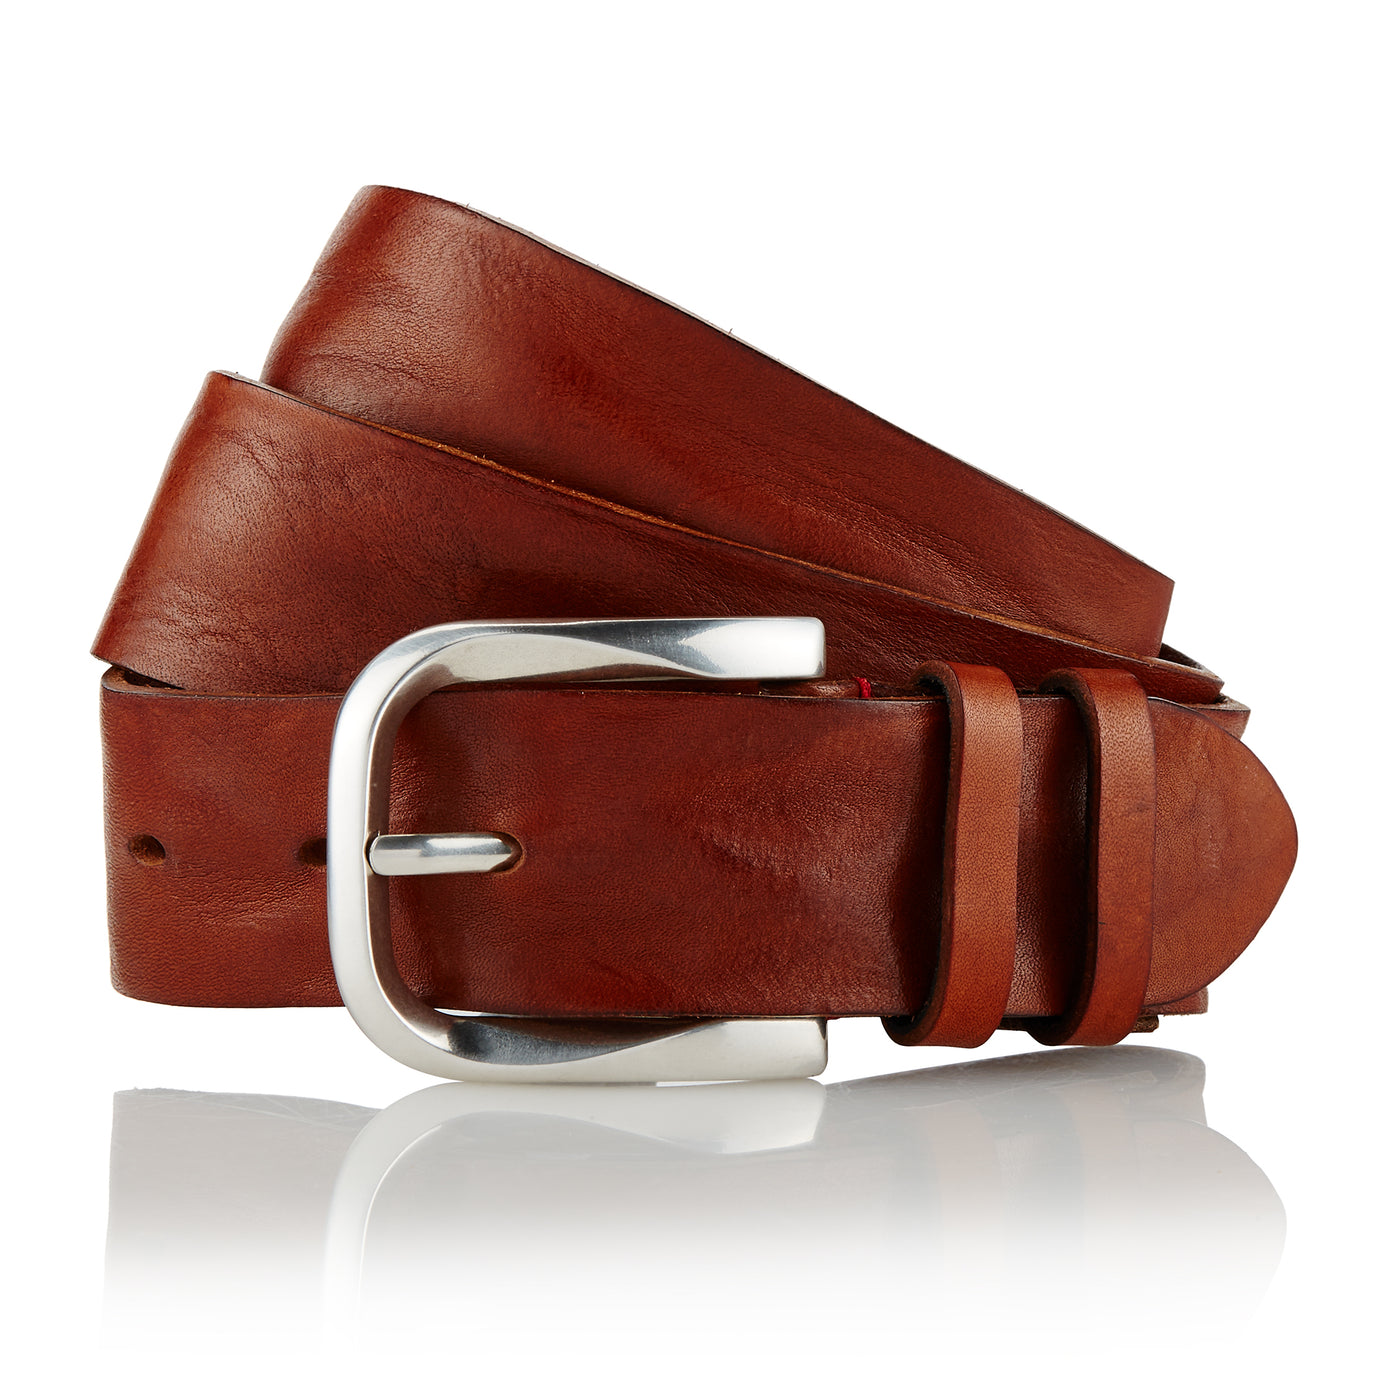 Kalé - Handcrafted Italian Belt / Brown